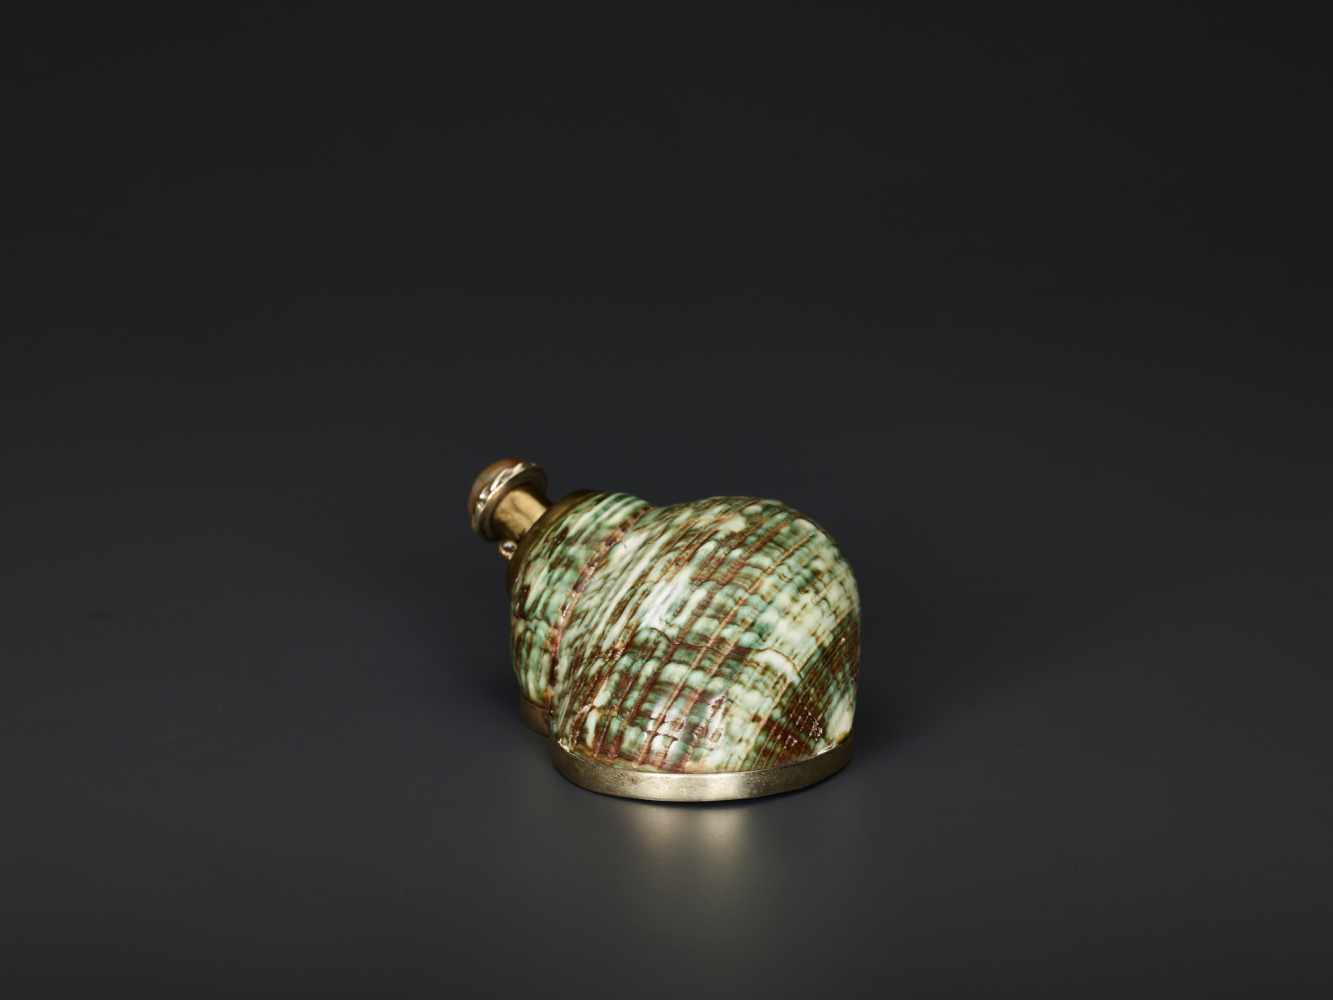 TURBO CONCH PERFUME CONTAINER WITH AGATE STOPPER, 19th CENTURYTurbo conch, silver plate metal and - Image 3 of 6